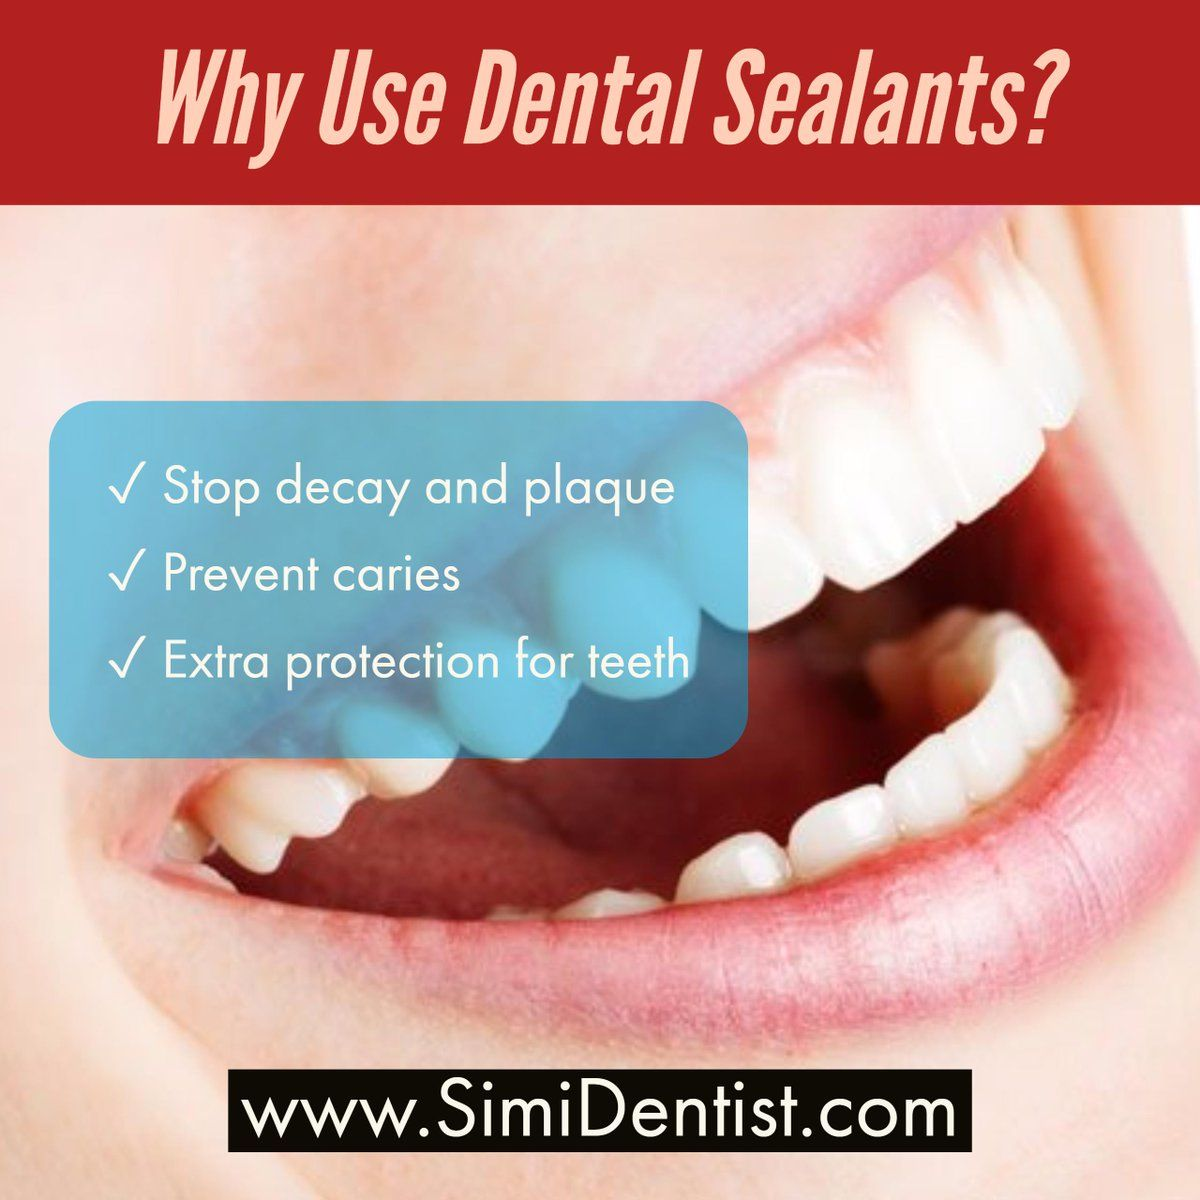 Dental sealants act as barriers to prevent cavities